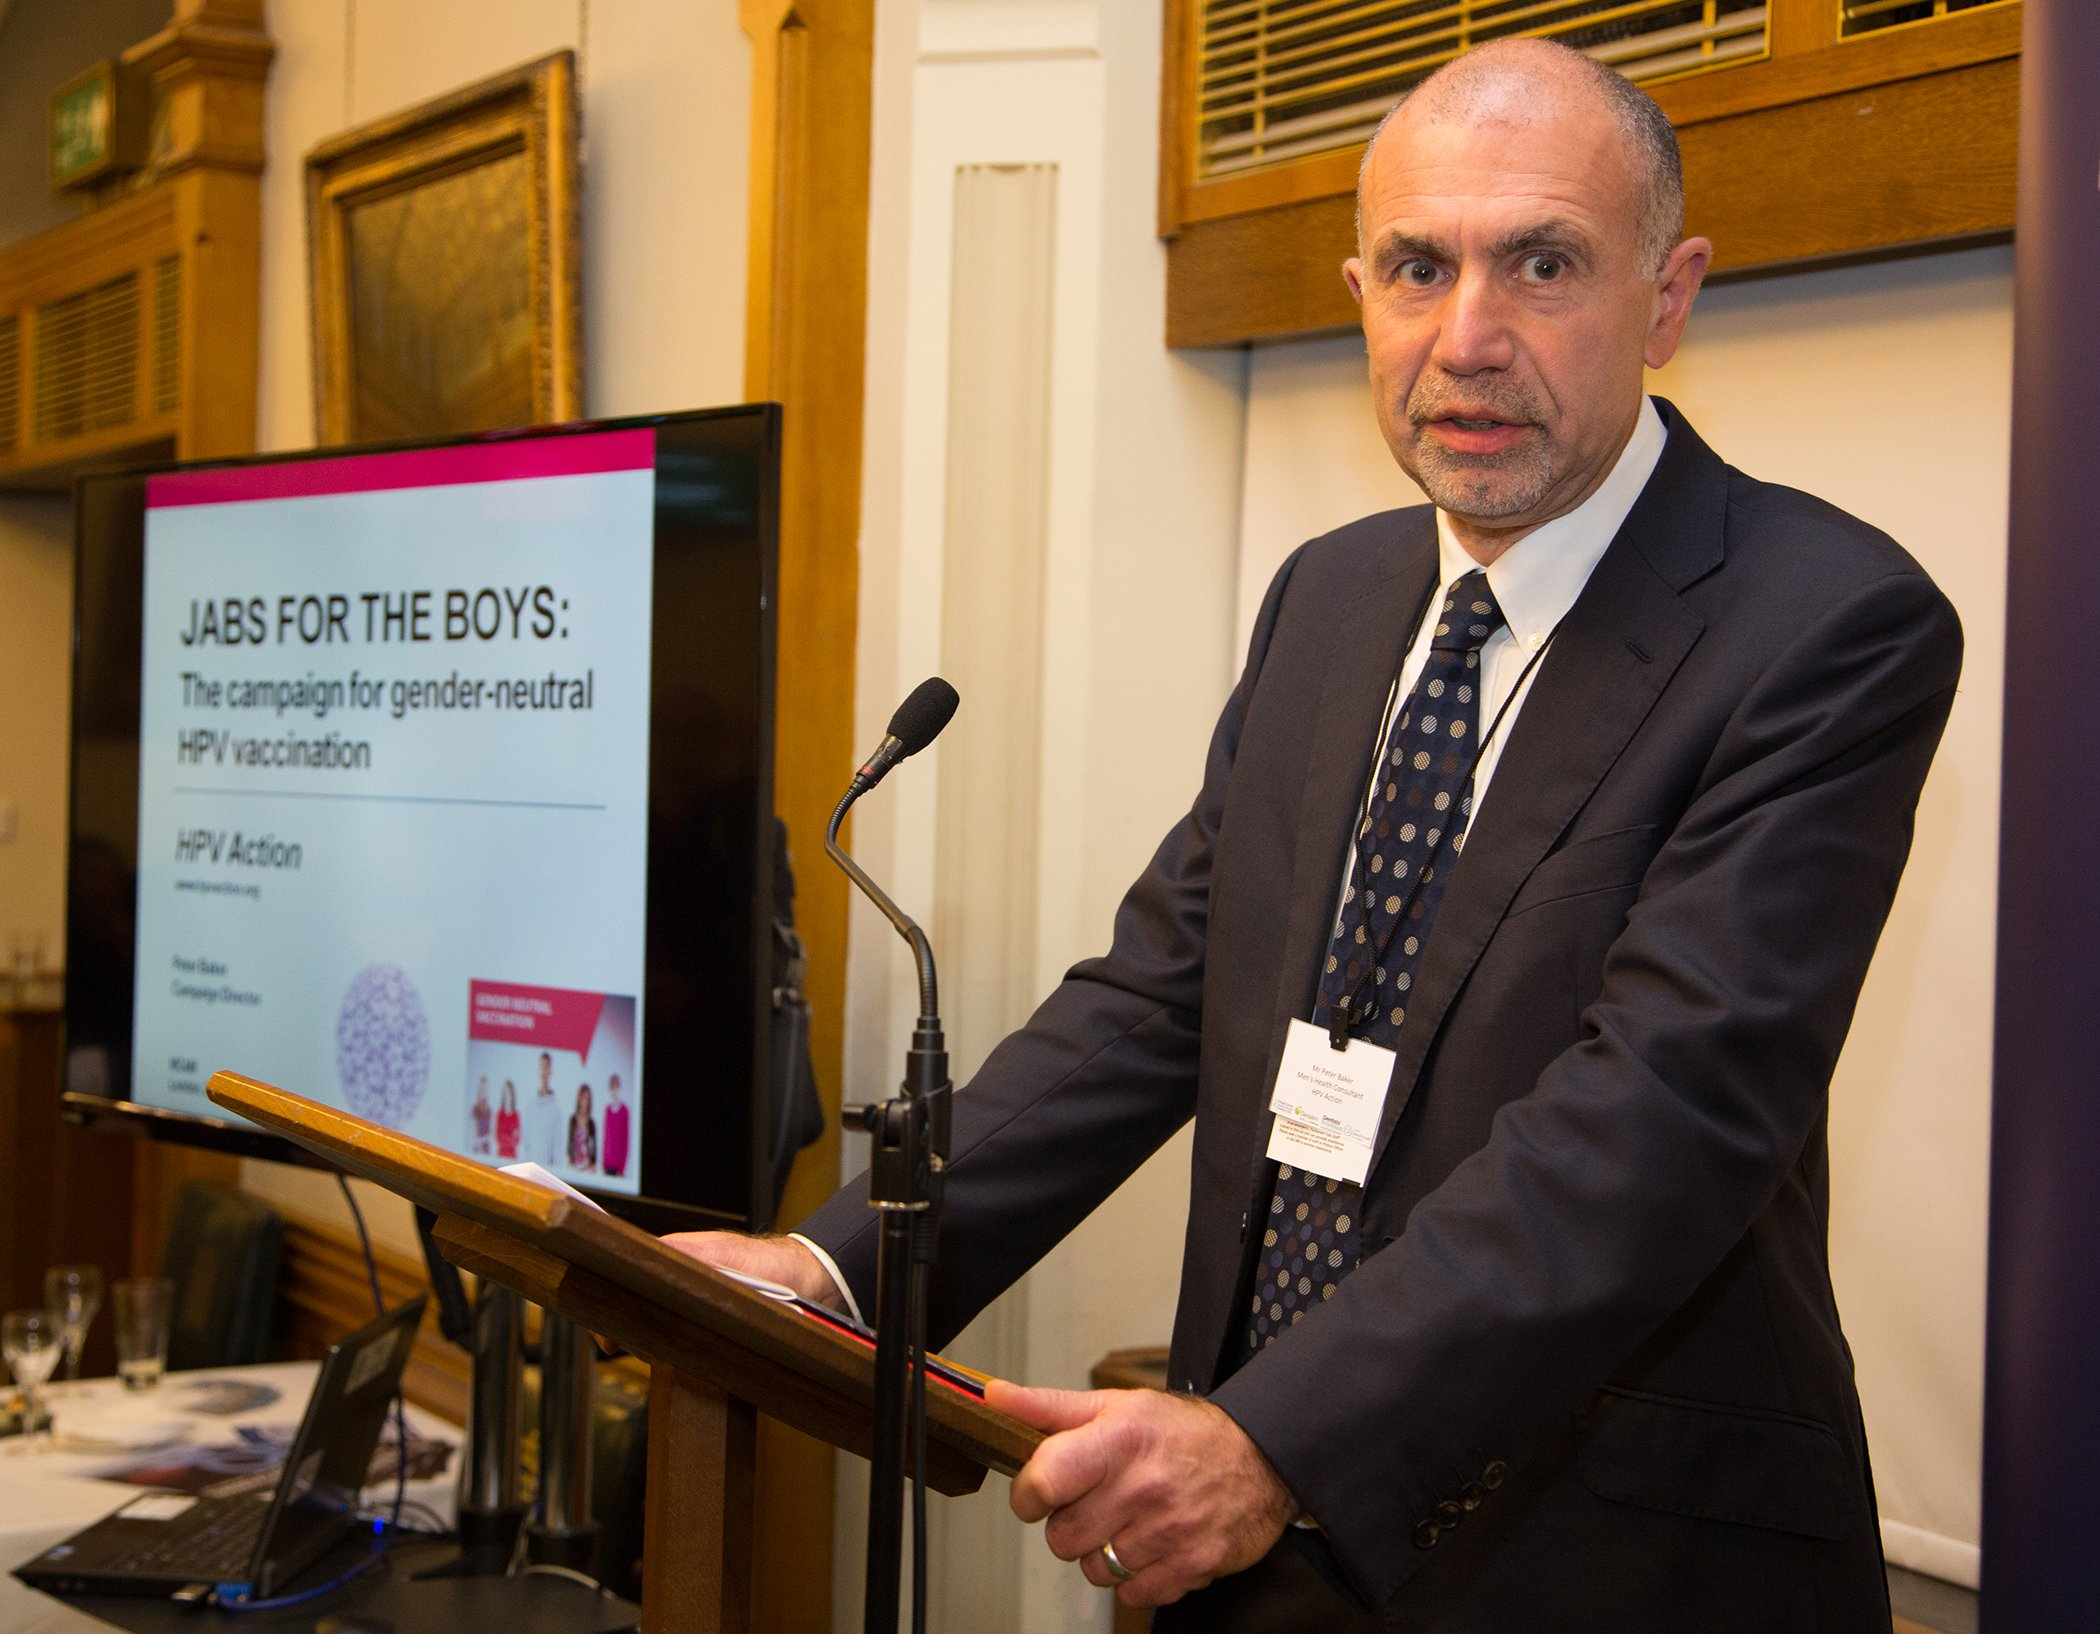 Peter Baker.House of Commons.HPV.jpg